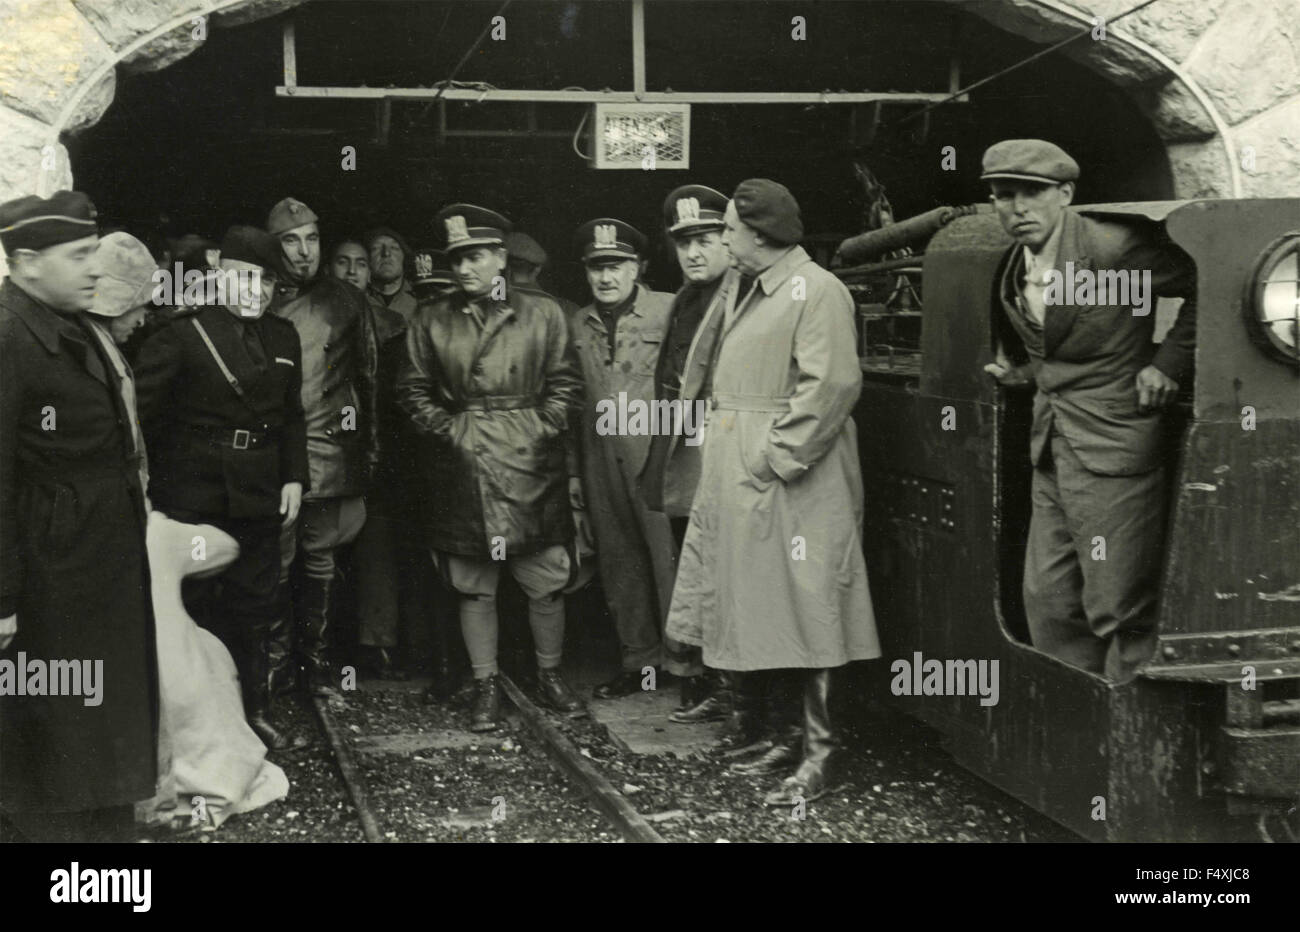 The fascist Galeazzo Ciano visits the Siegfried defense line, France - Stock Image